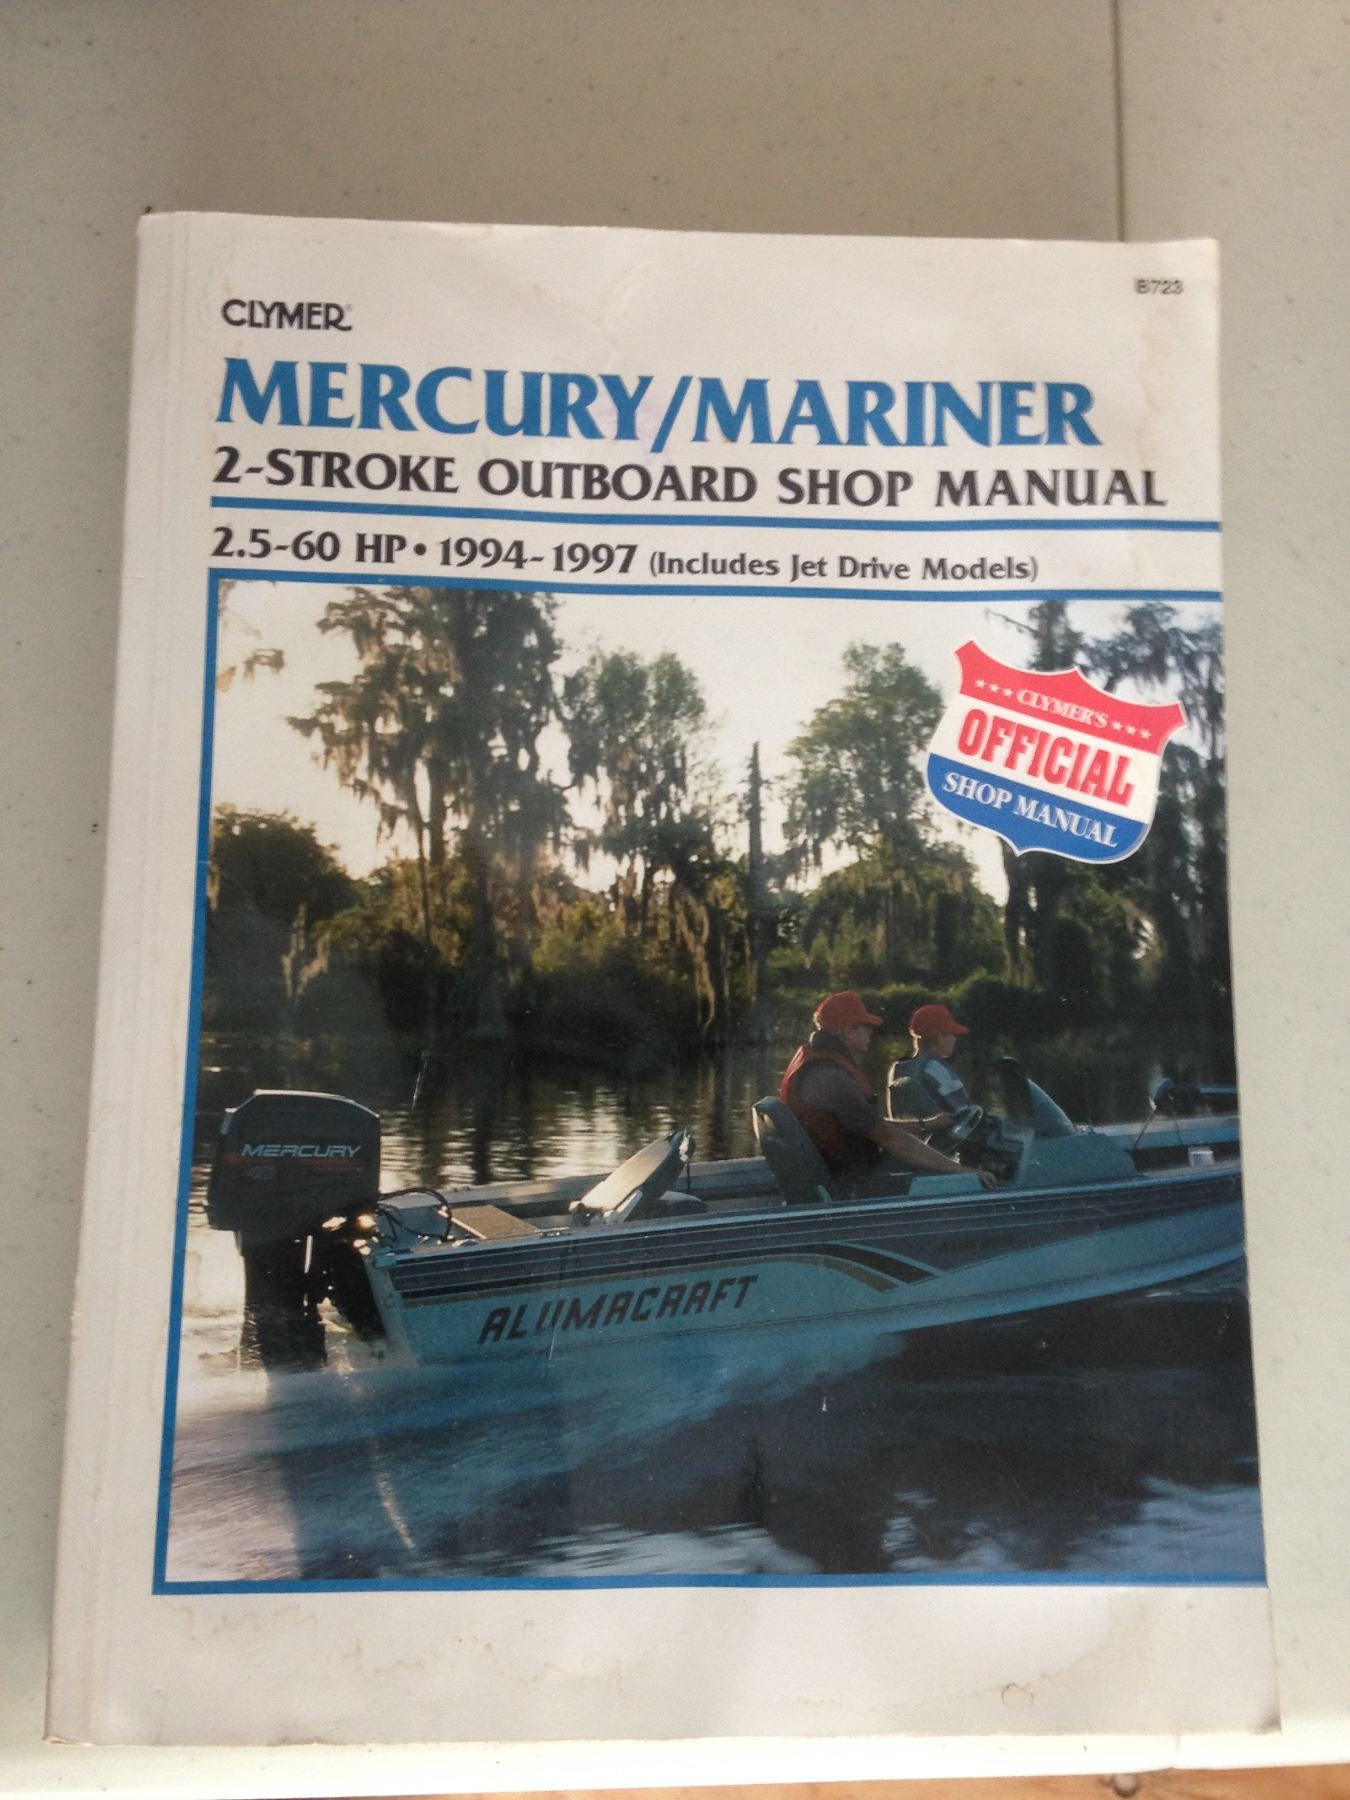 Image 1 : Mercury/Mariner 2 Stroke Outboard Shop Manual 2.5 - 60HP 1994 -